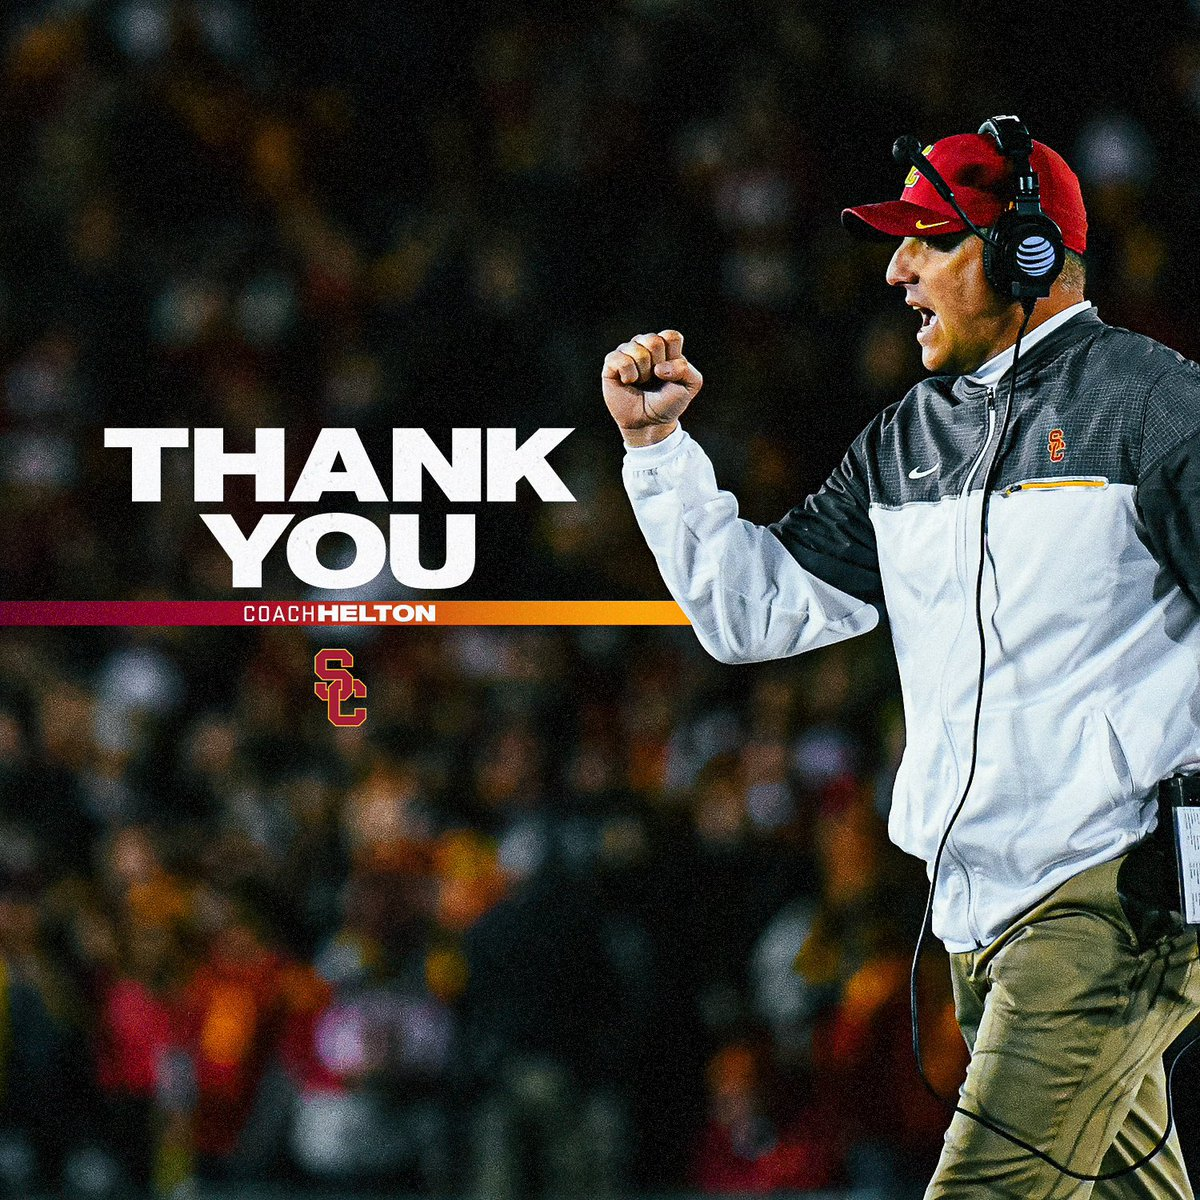 Thank you Coach Helton for all you have given to USC Football and the entire USC community. Your integrity, compassion, and leadership made an immeasurable impact on every player and staff member over the last 12 years. We wish you nothing but the best moving forward. Fight On!